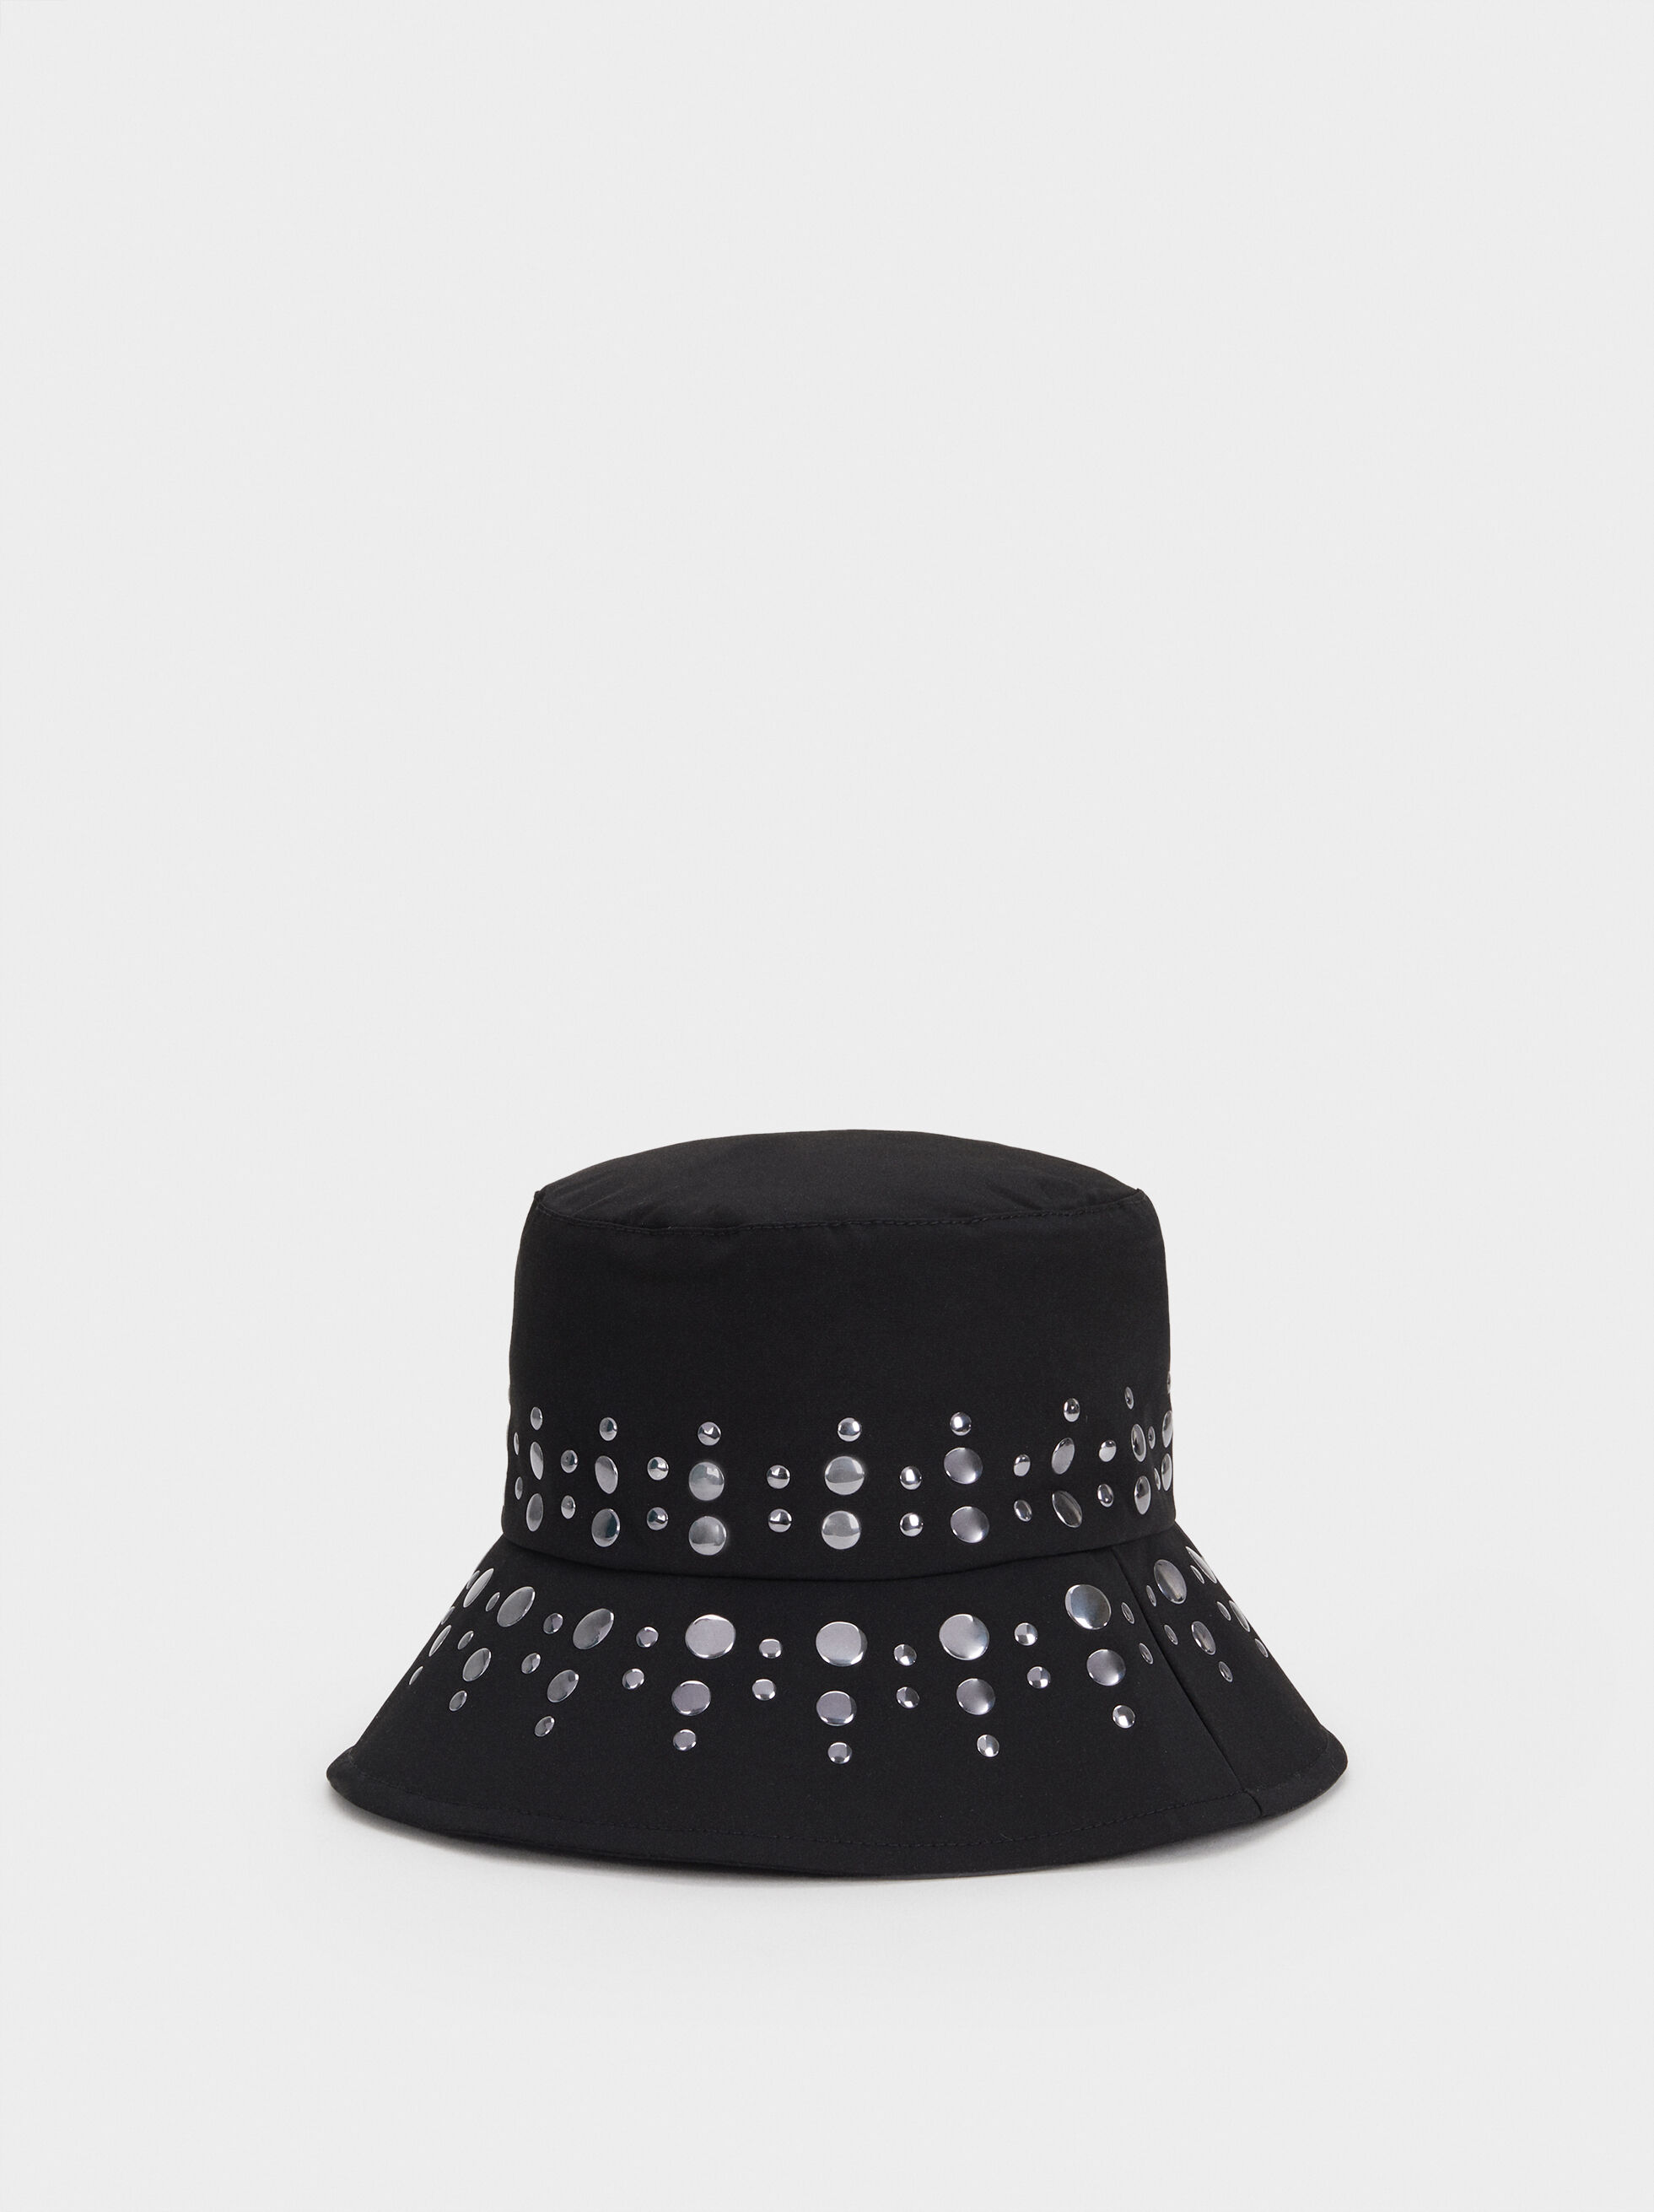 Hat With Stud Detail, Black, hi-res